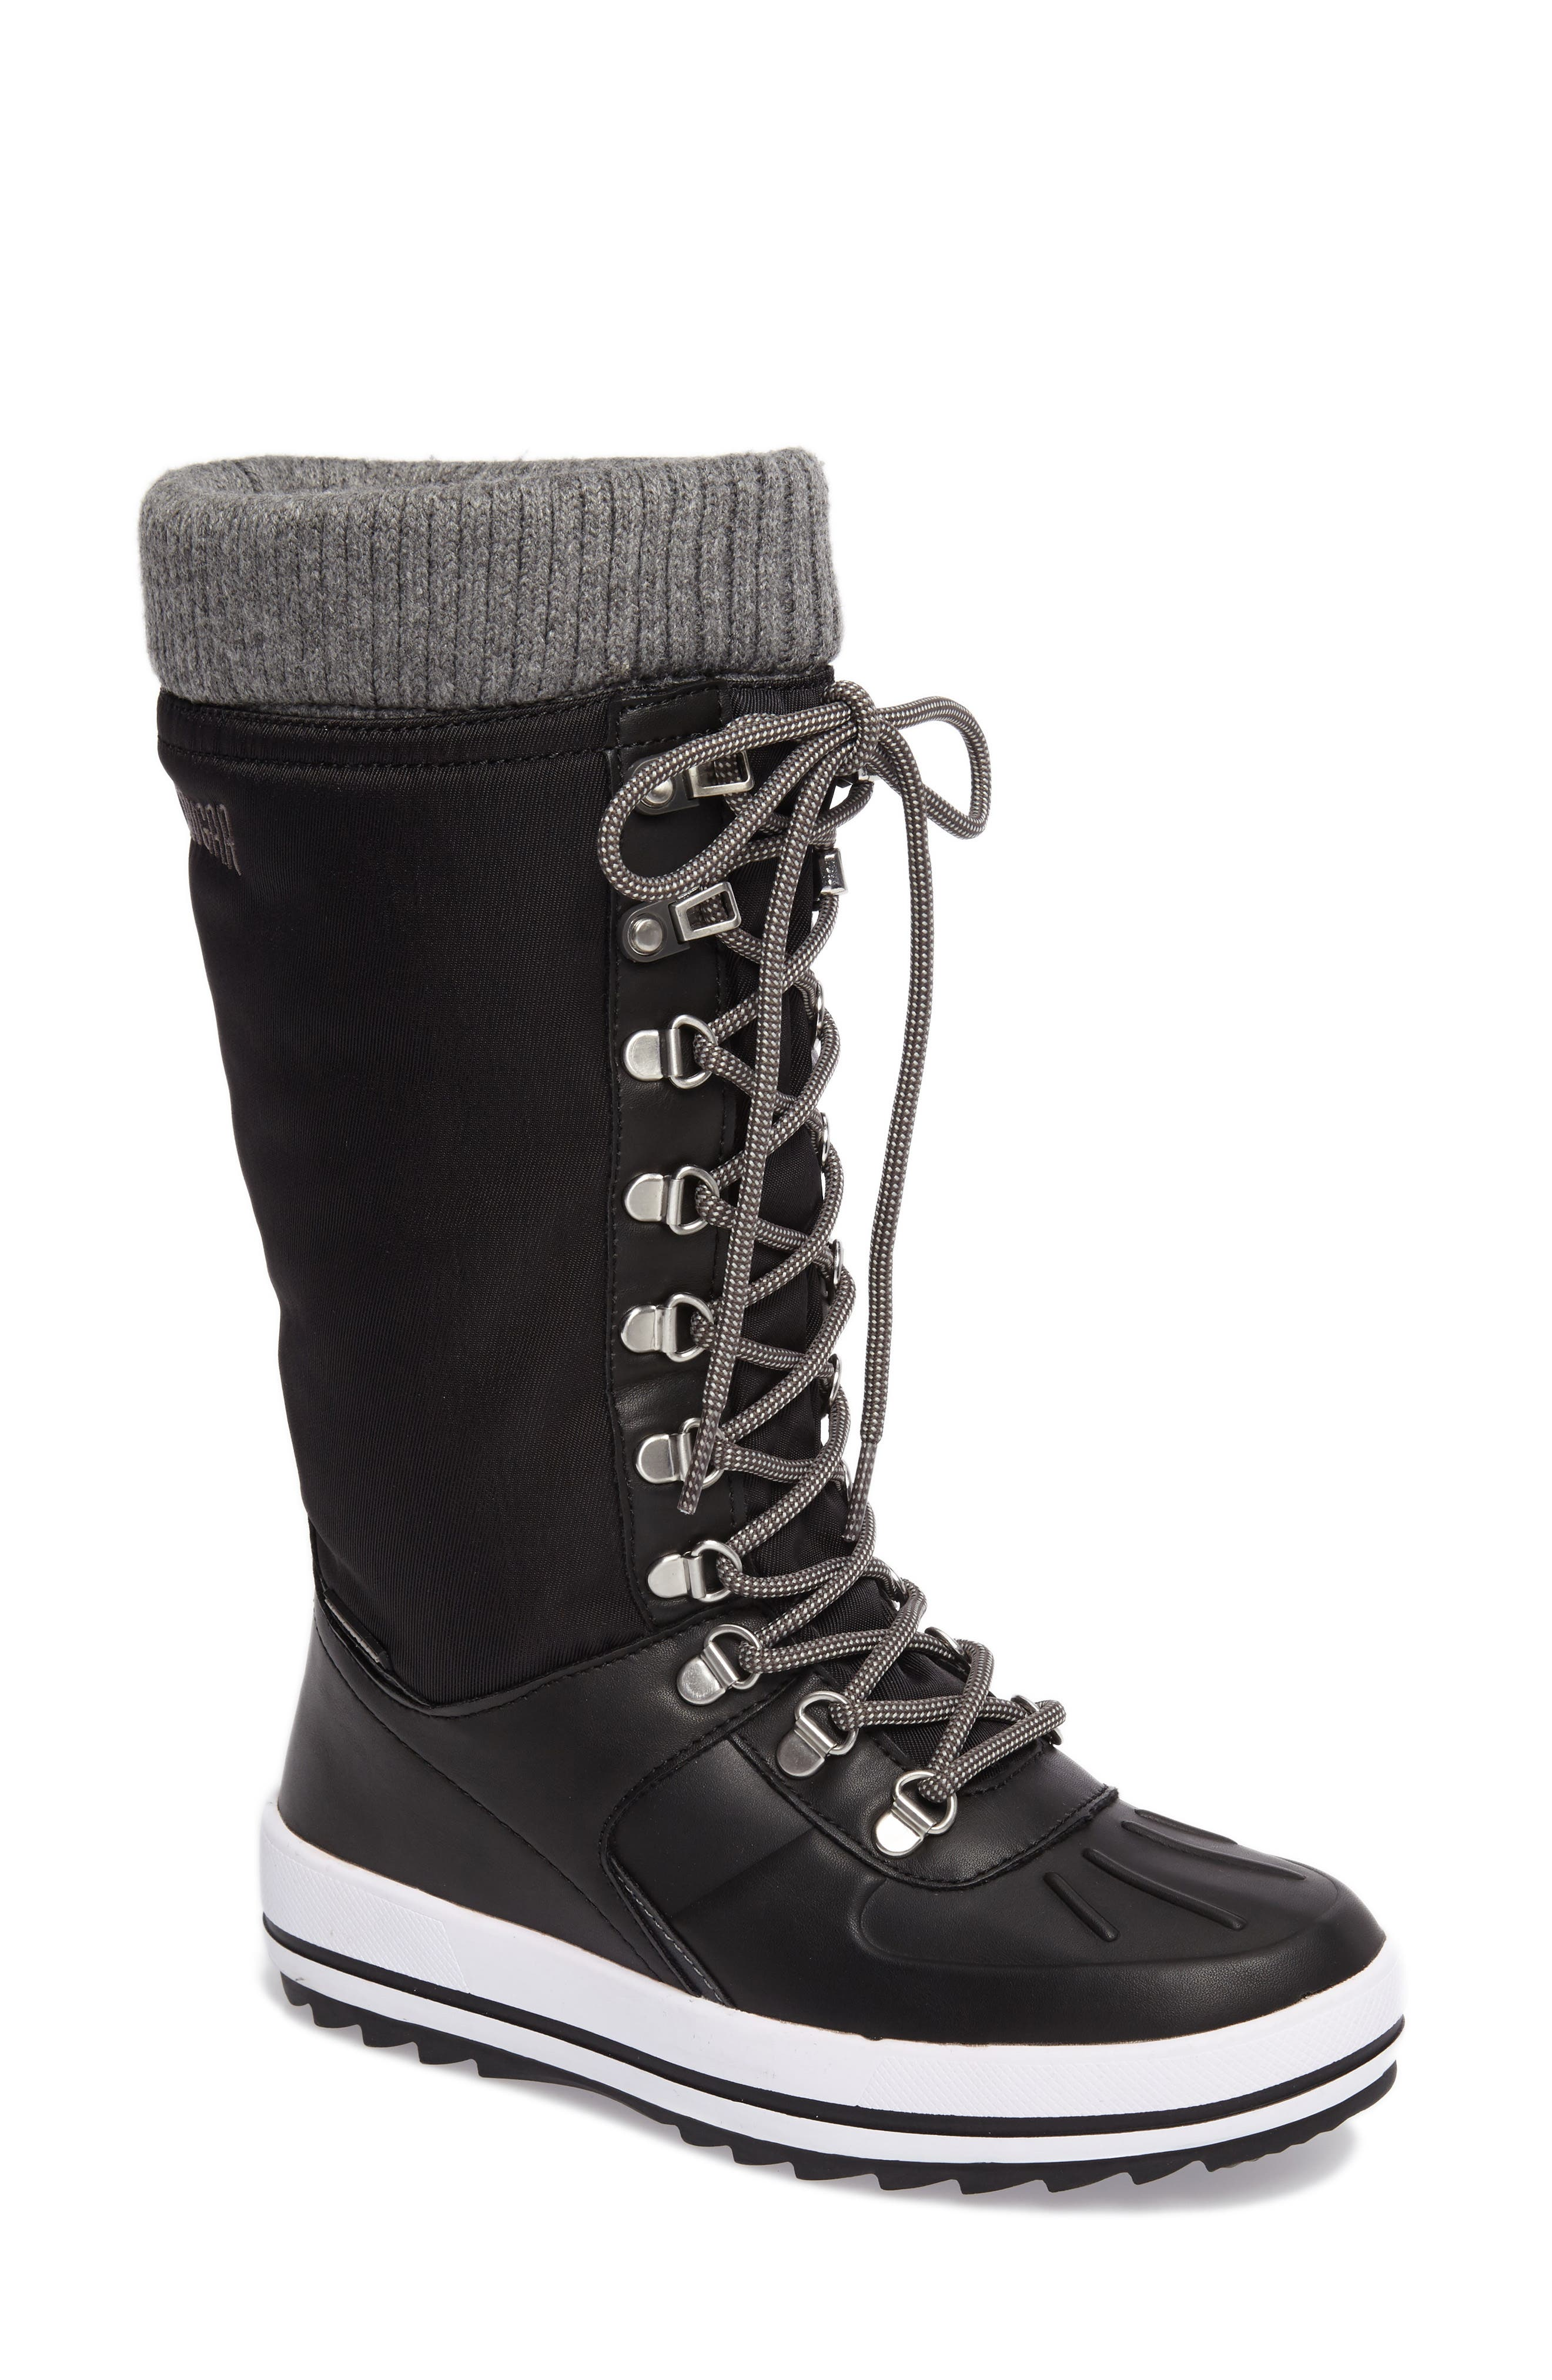 Vancouver Waterproof Winter Boot,                             Main thumbnail 1, color,